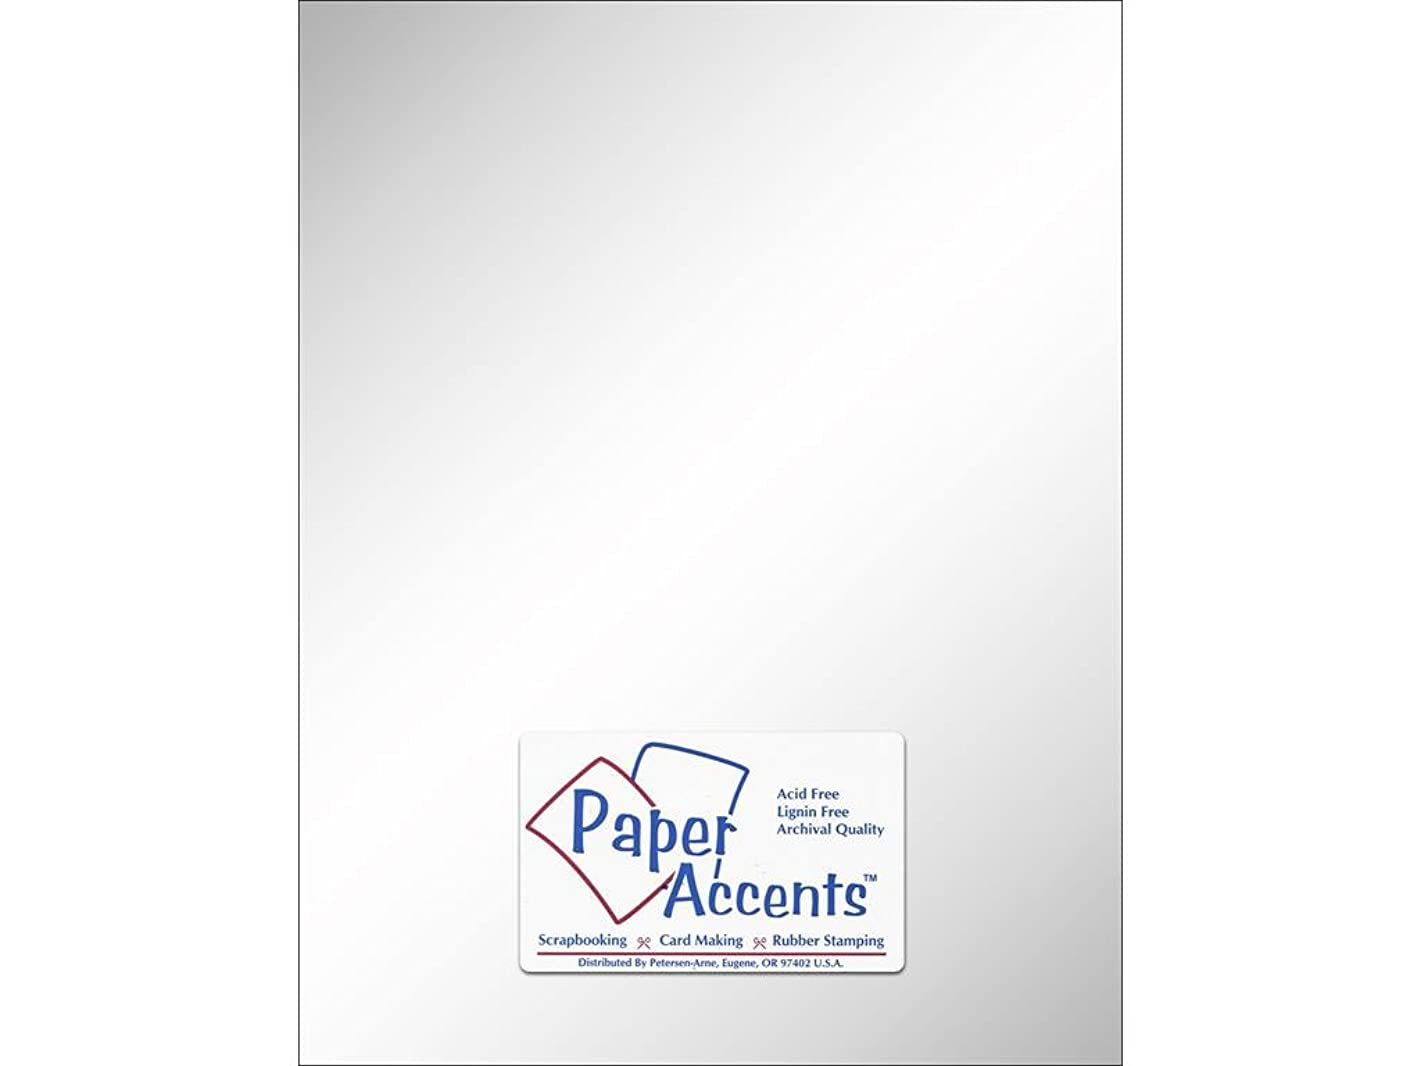 Accent Design Paper Accents Pearl Cdstk 8.5x11 Ice Silver PearlCdstk IceSilver